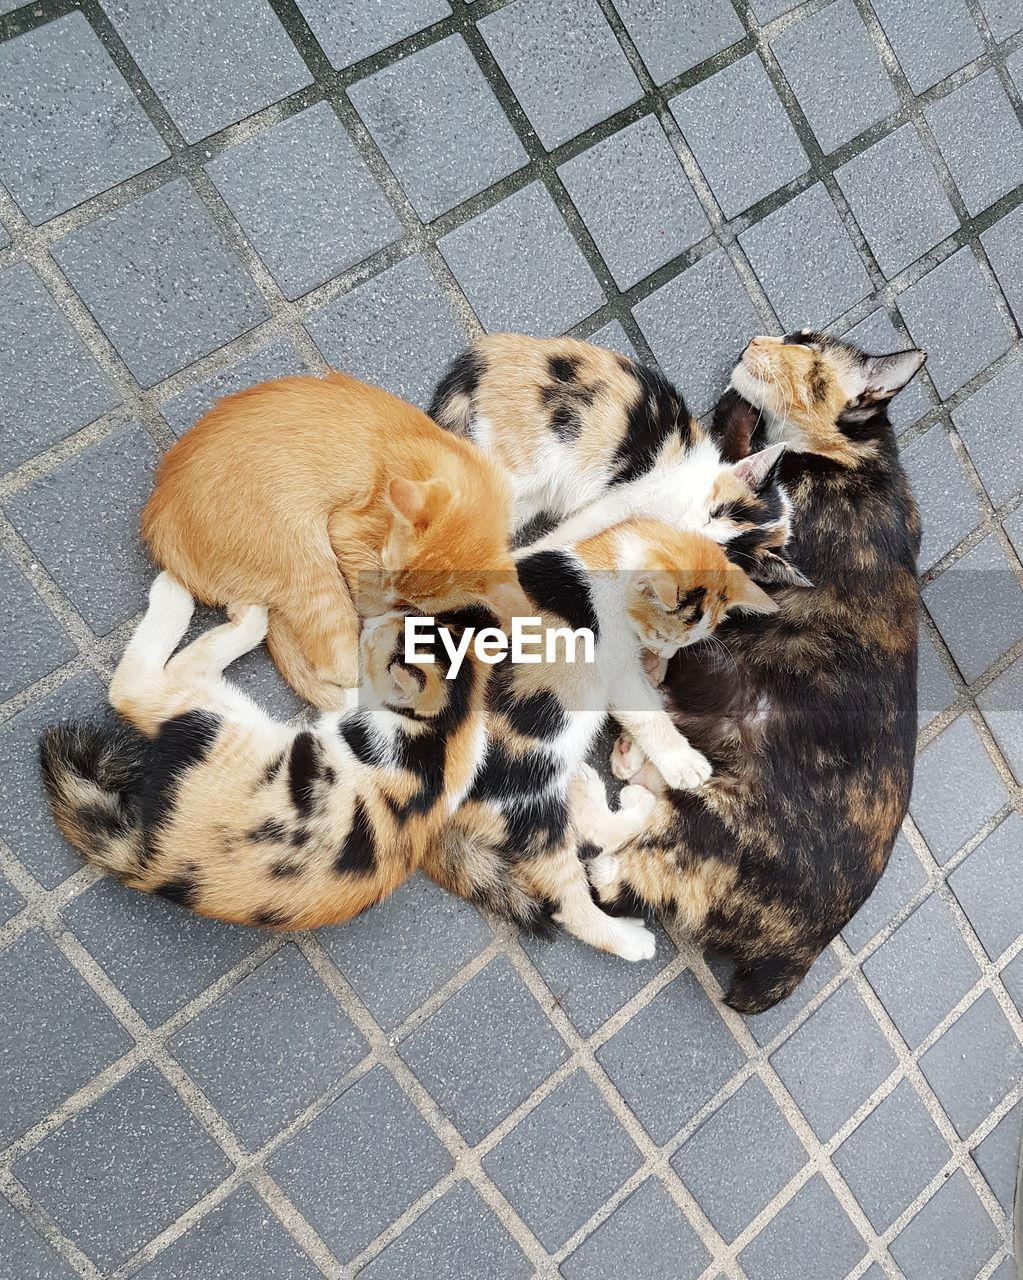 animal themes, mammal, animal, group of animals, domestic, pets, domestic animals, vertebrate, high angle view, young animal, relaxation, canine, no people, dog, feline, puppy, cat, cute, tiled floor, animal family